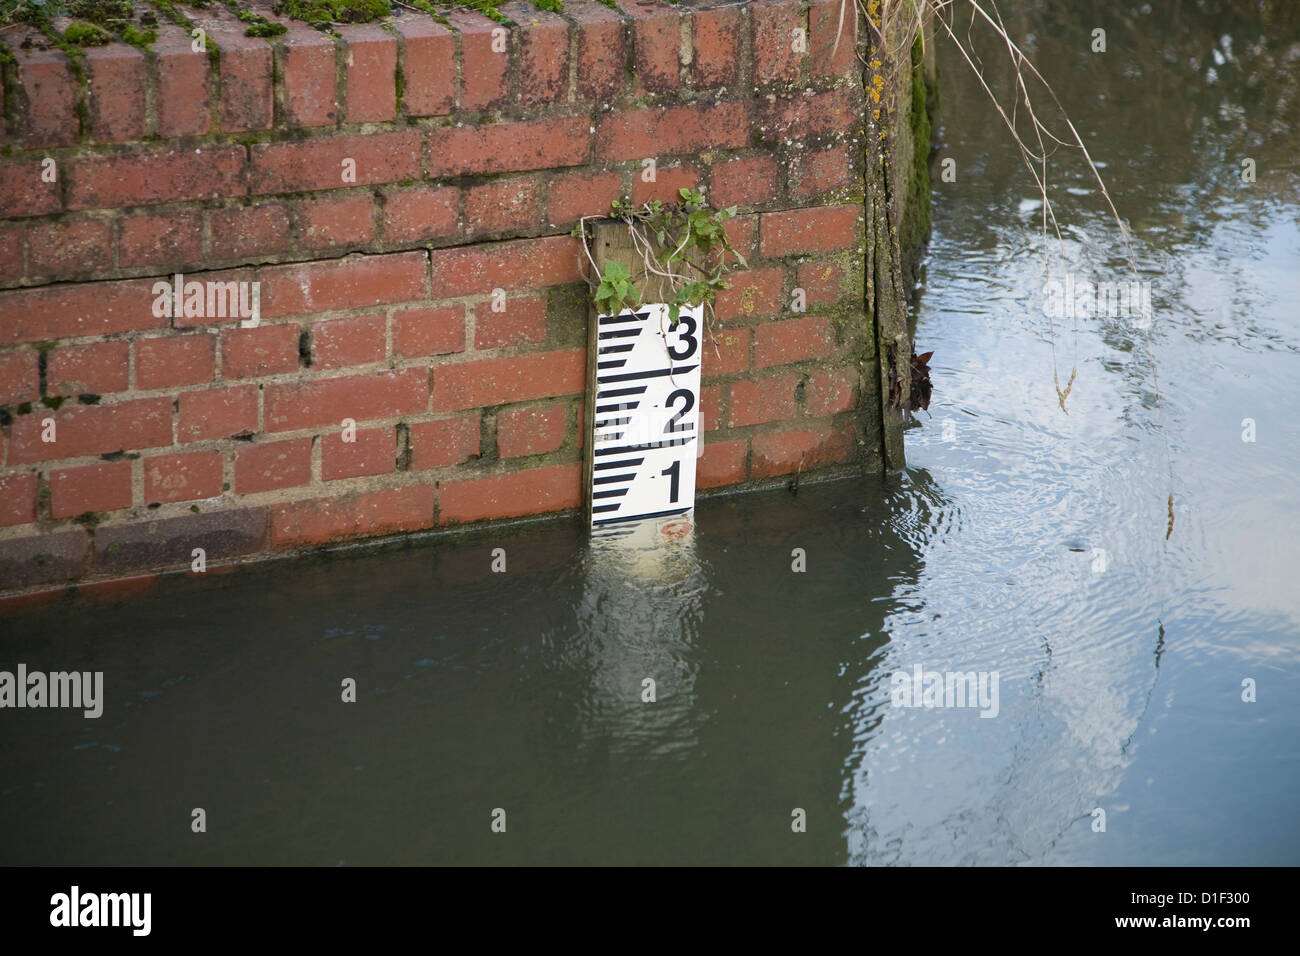 River depth measuring scale Whitebridge Weir, River Deben, Suffolk, England - Stock Image